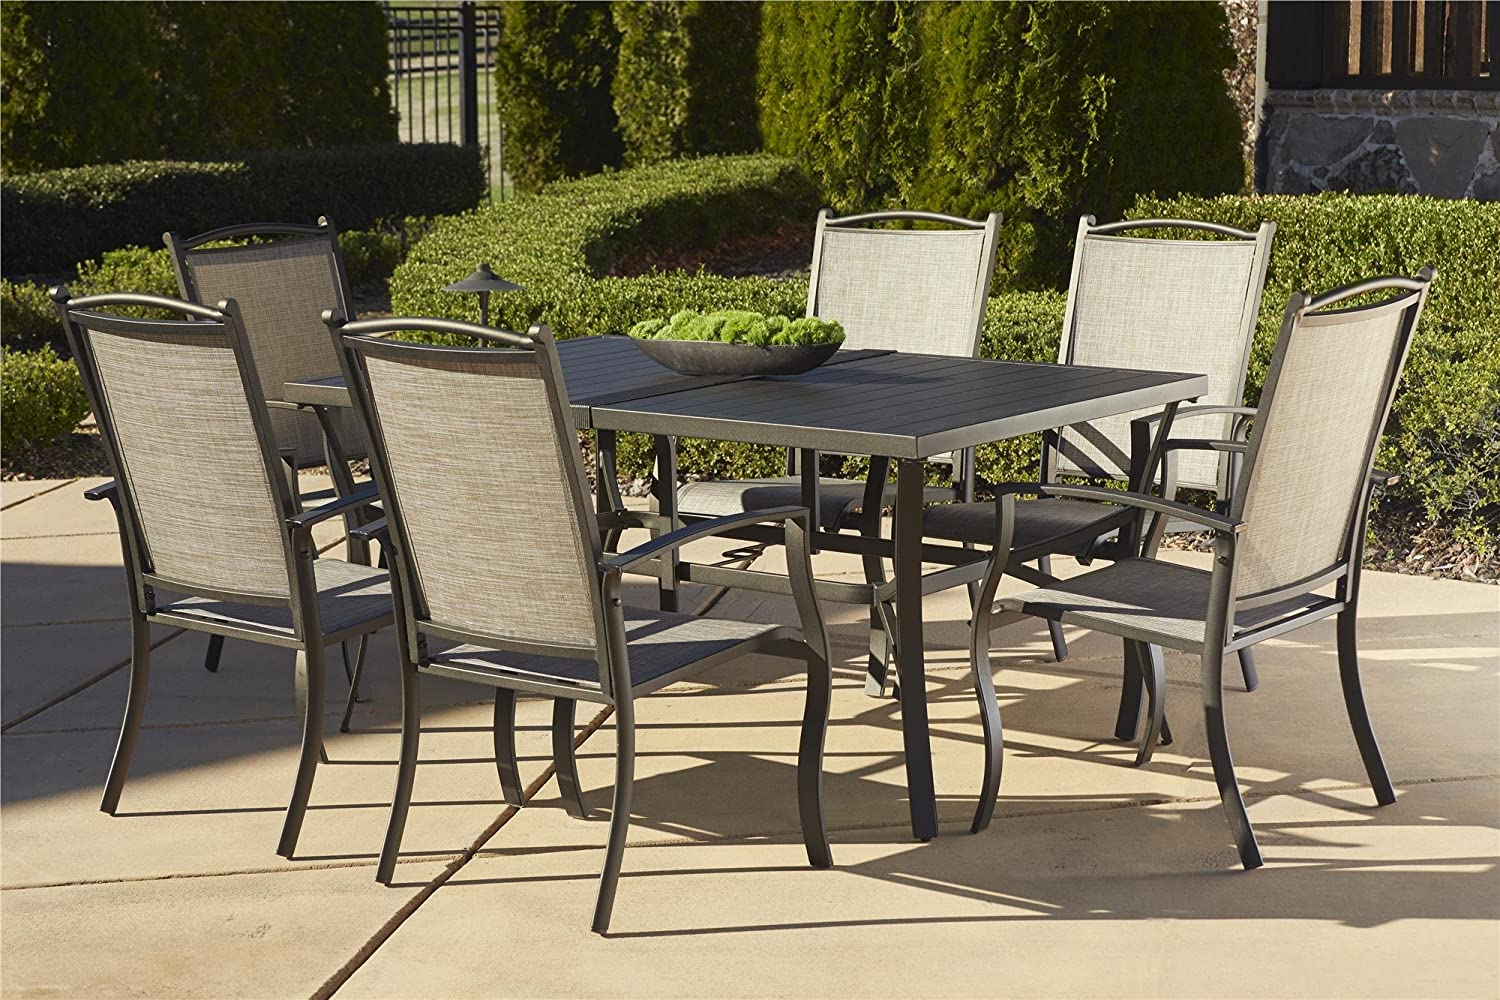 the home dining set b lemans outdoors furniture piece sets oval depot patio n deluxe amazonia